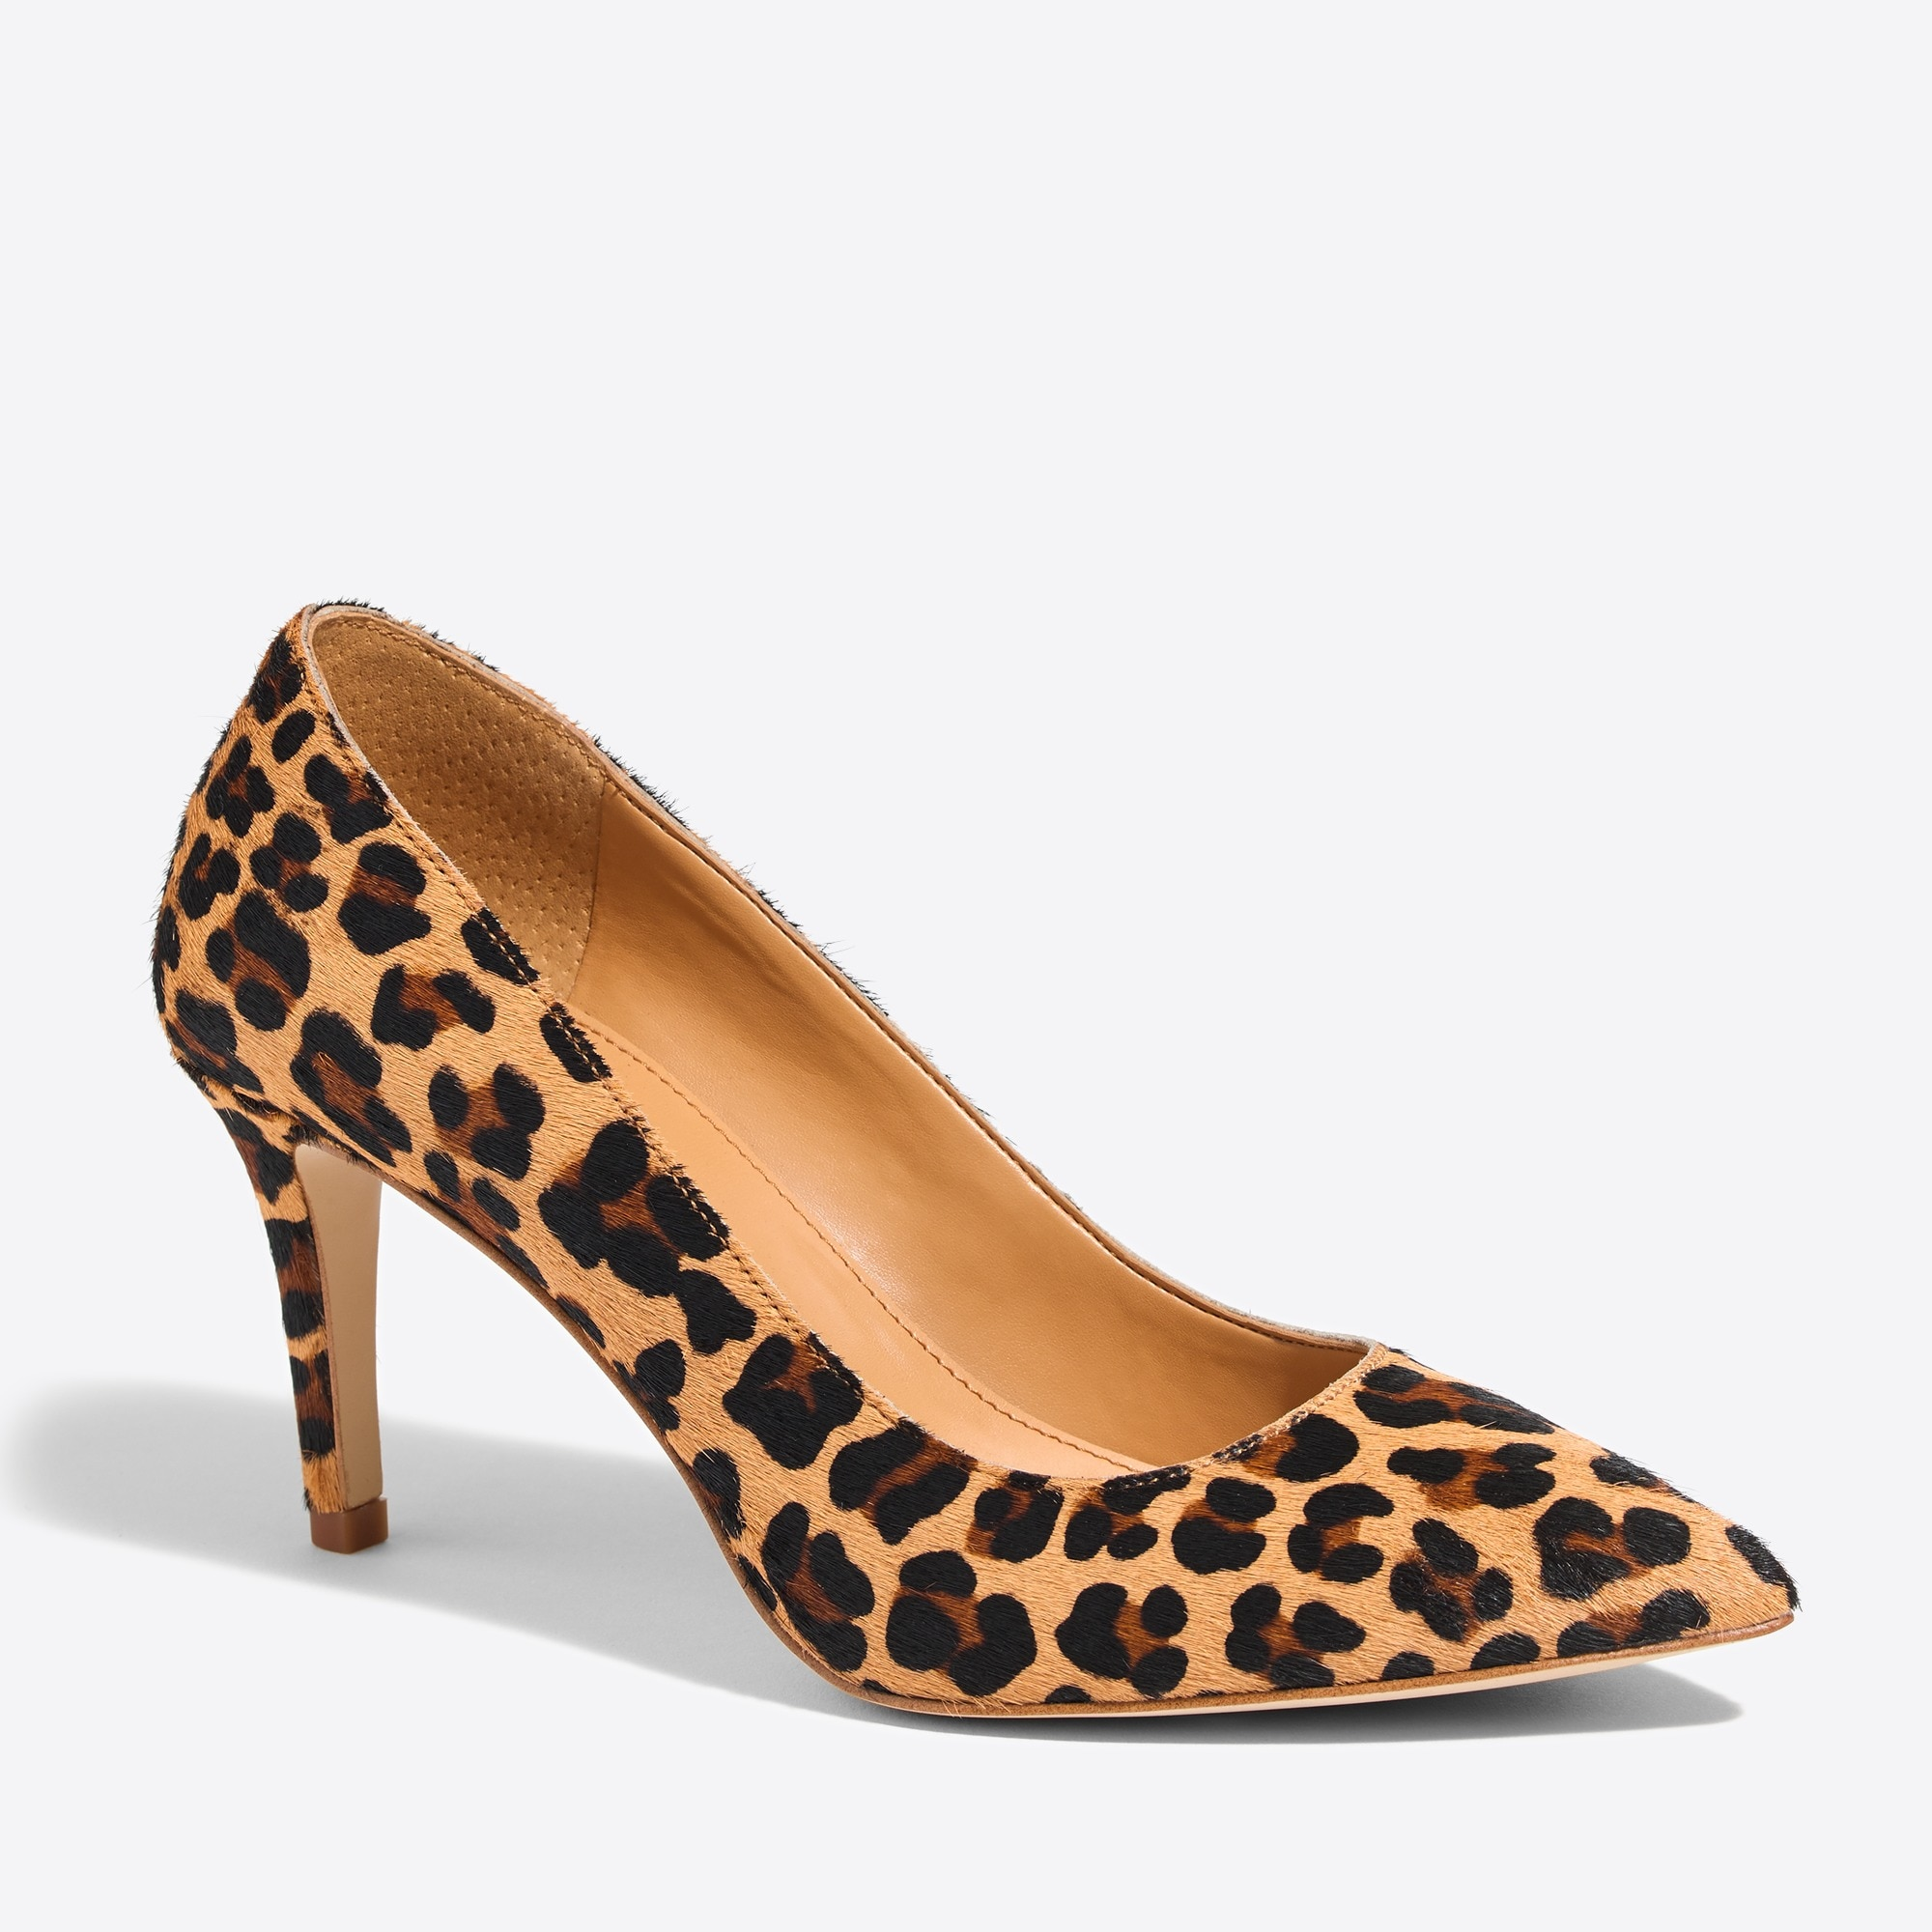 Image 1 for Isabelle calf hair pumps